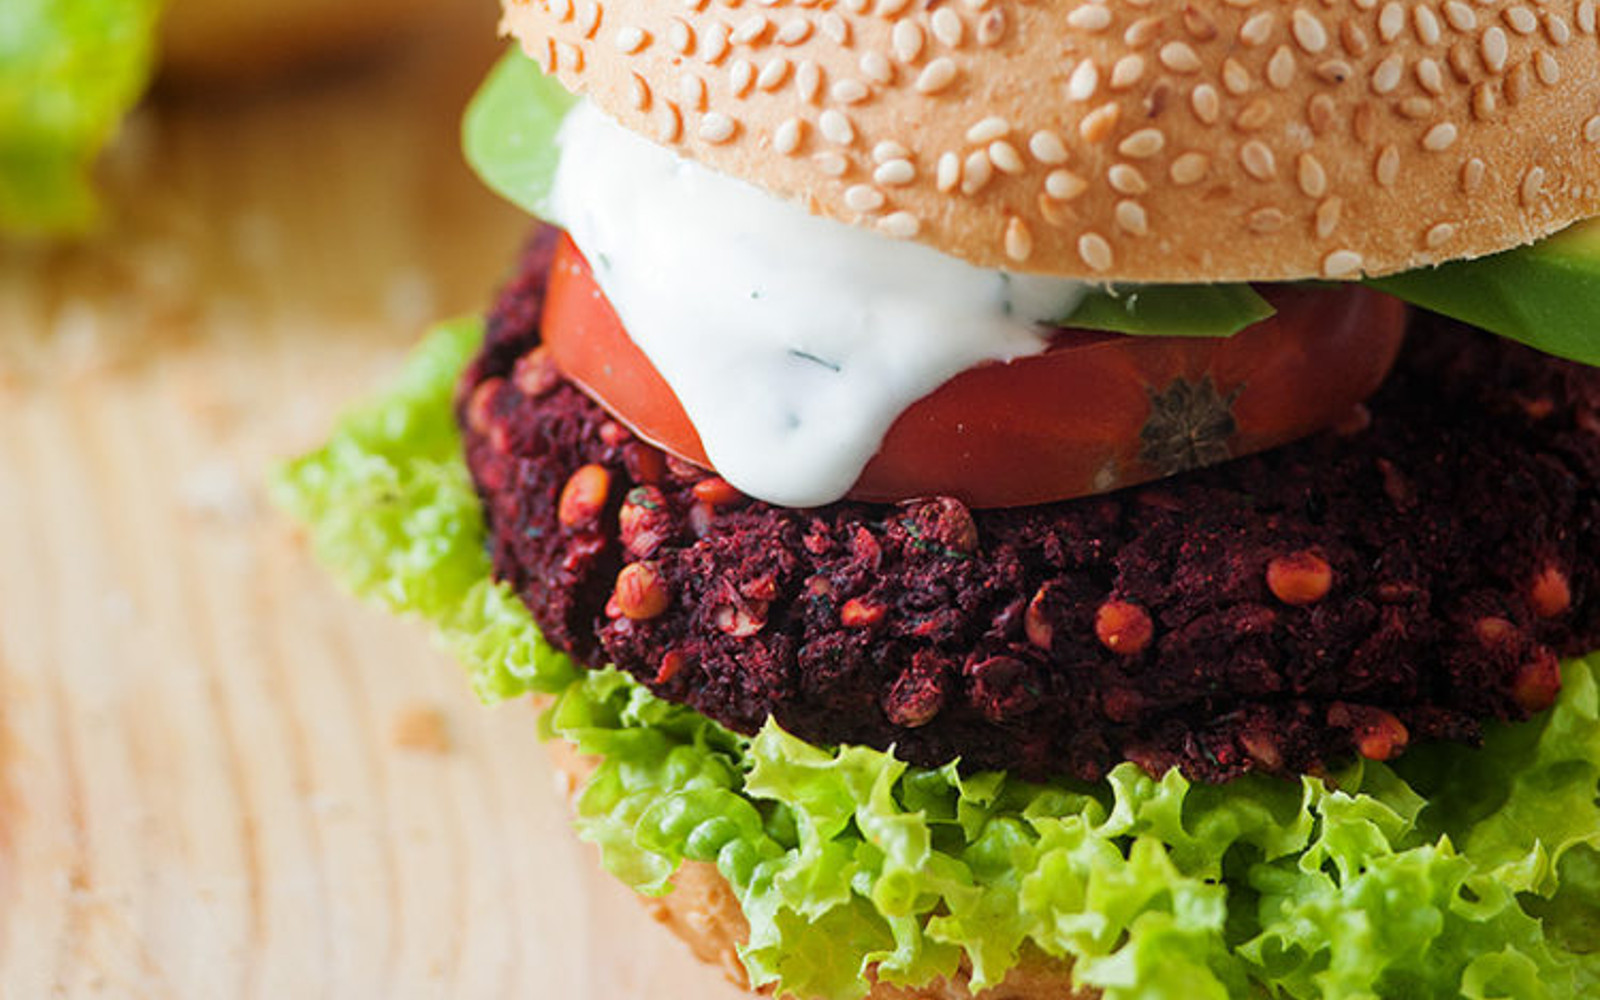 Vegan Indian lentil burgers with dill dairy-free yogurt sauce